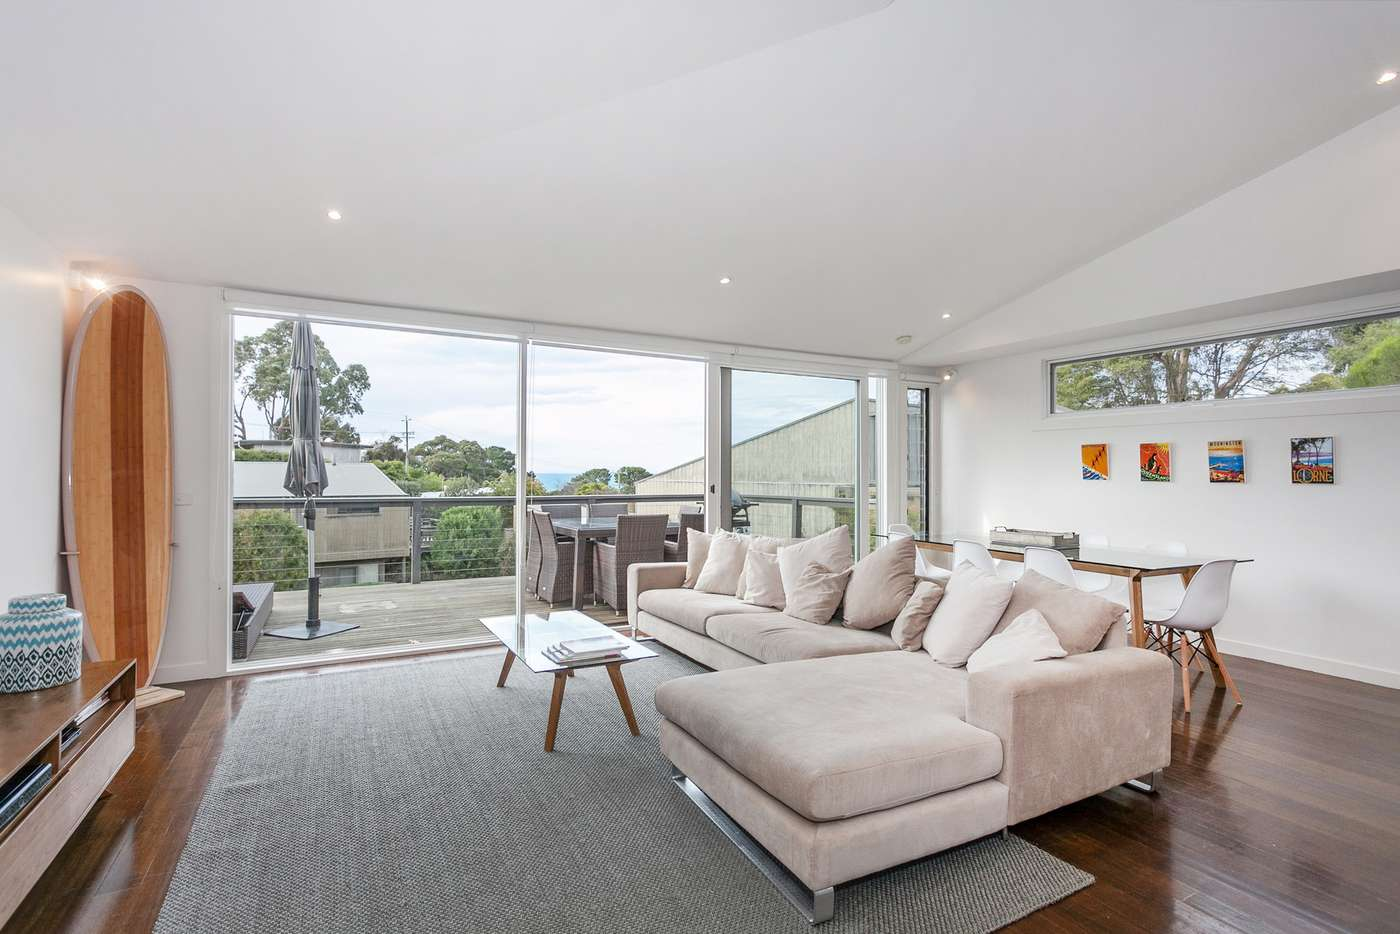 Main view of Homely house listing, 2/21 Deans Marsh Road, Lorne VIC 3232